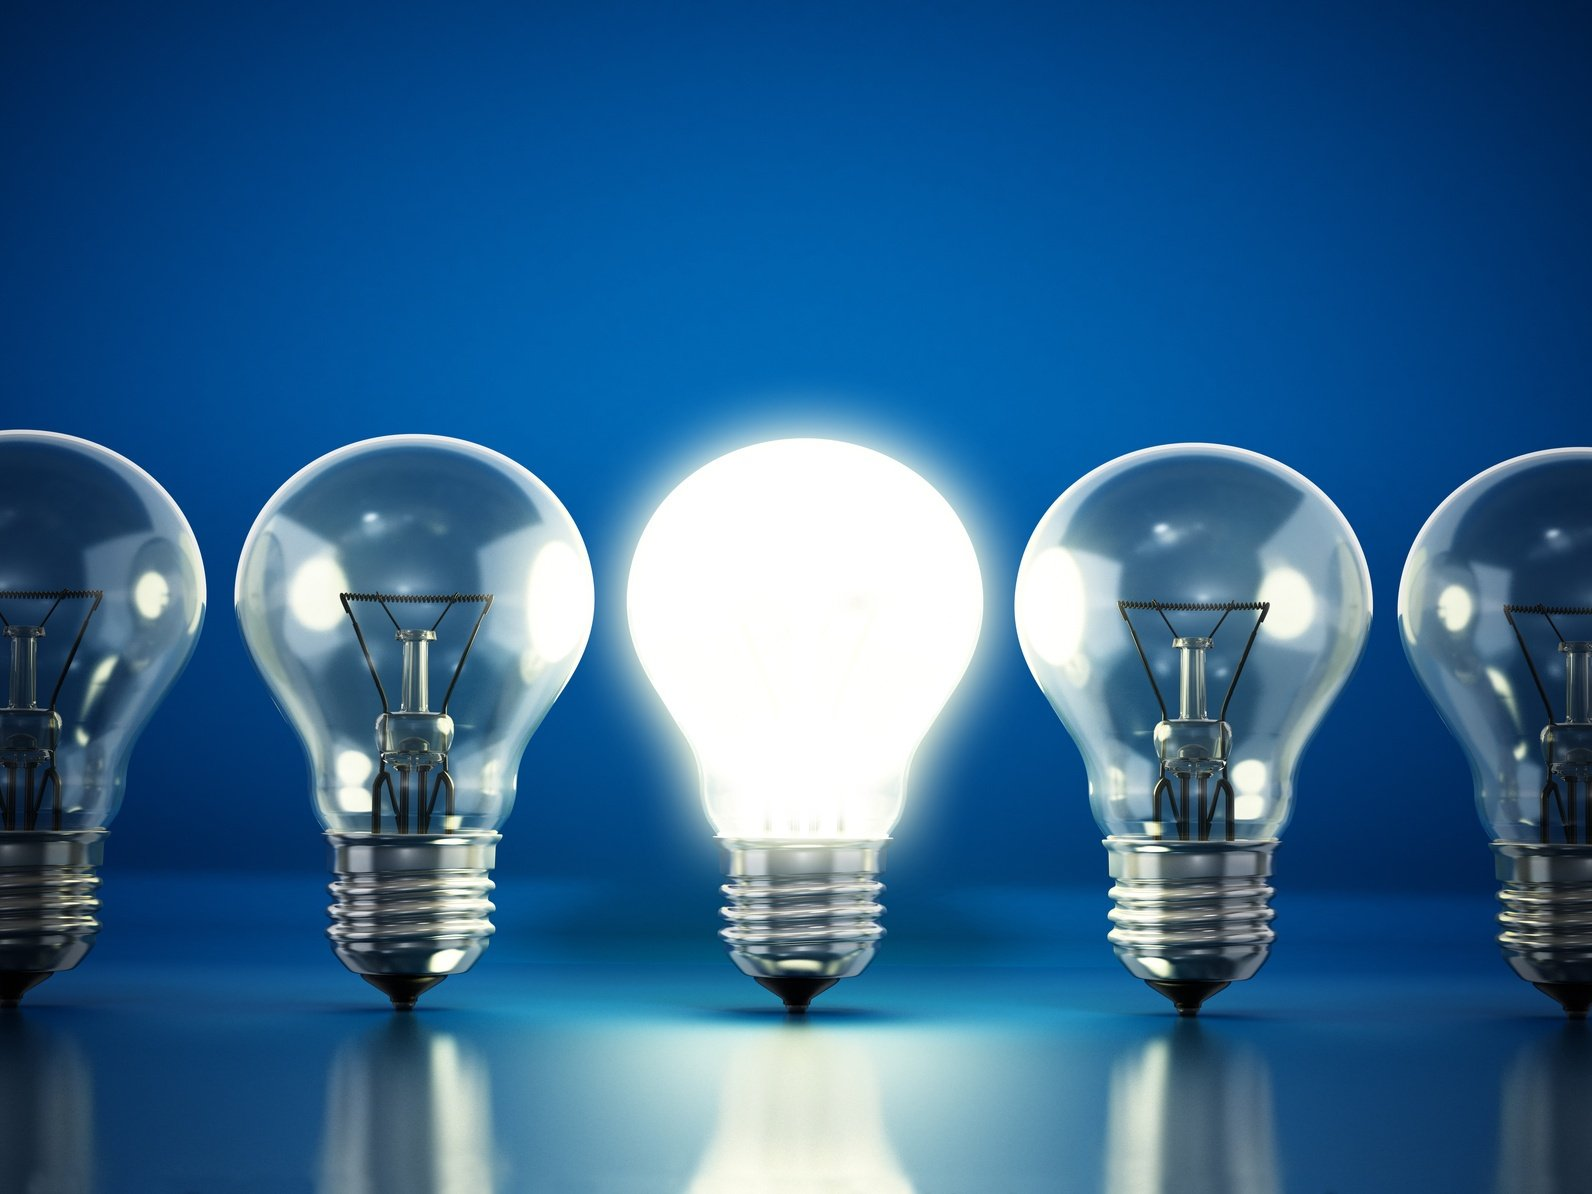 light-bulbs2.jpg